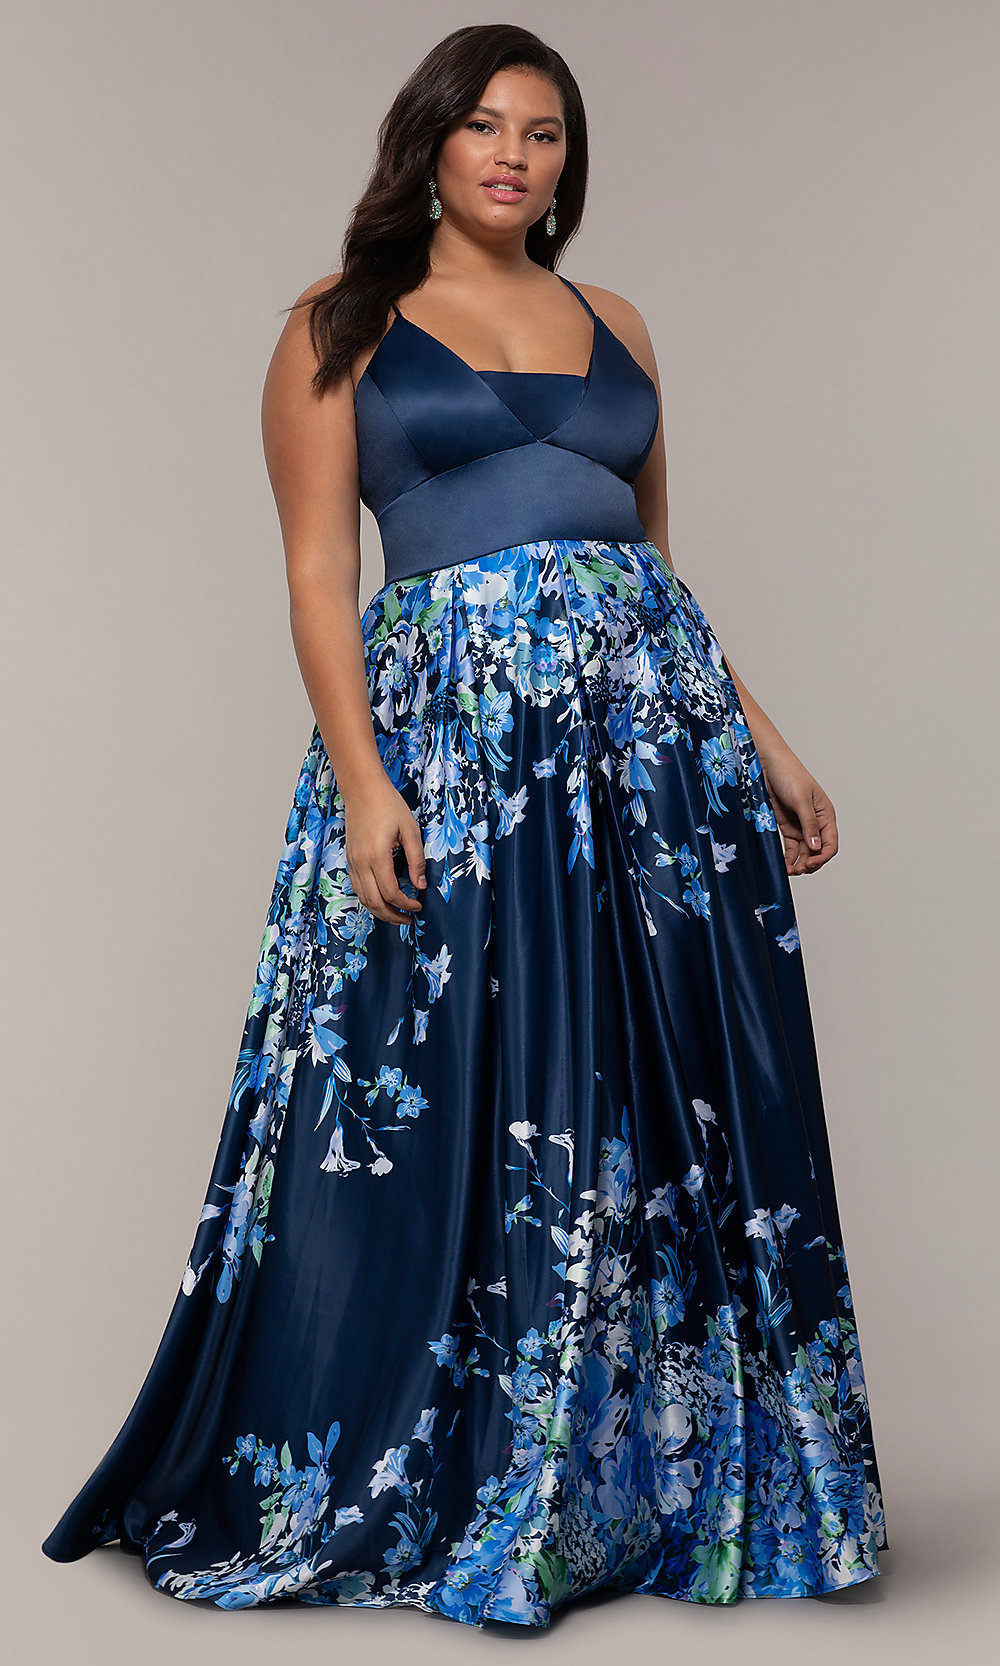 Floral Plus Size Navy Blue Prom Dress By Promgirl